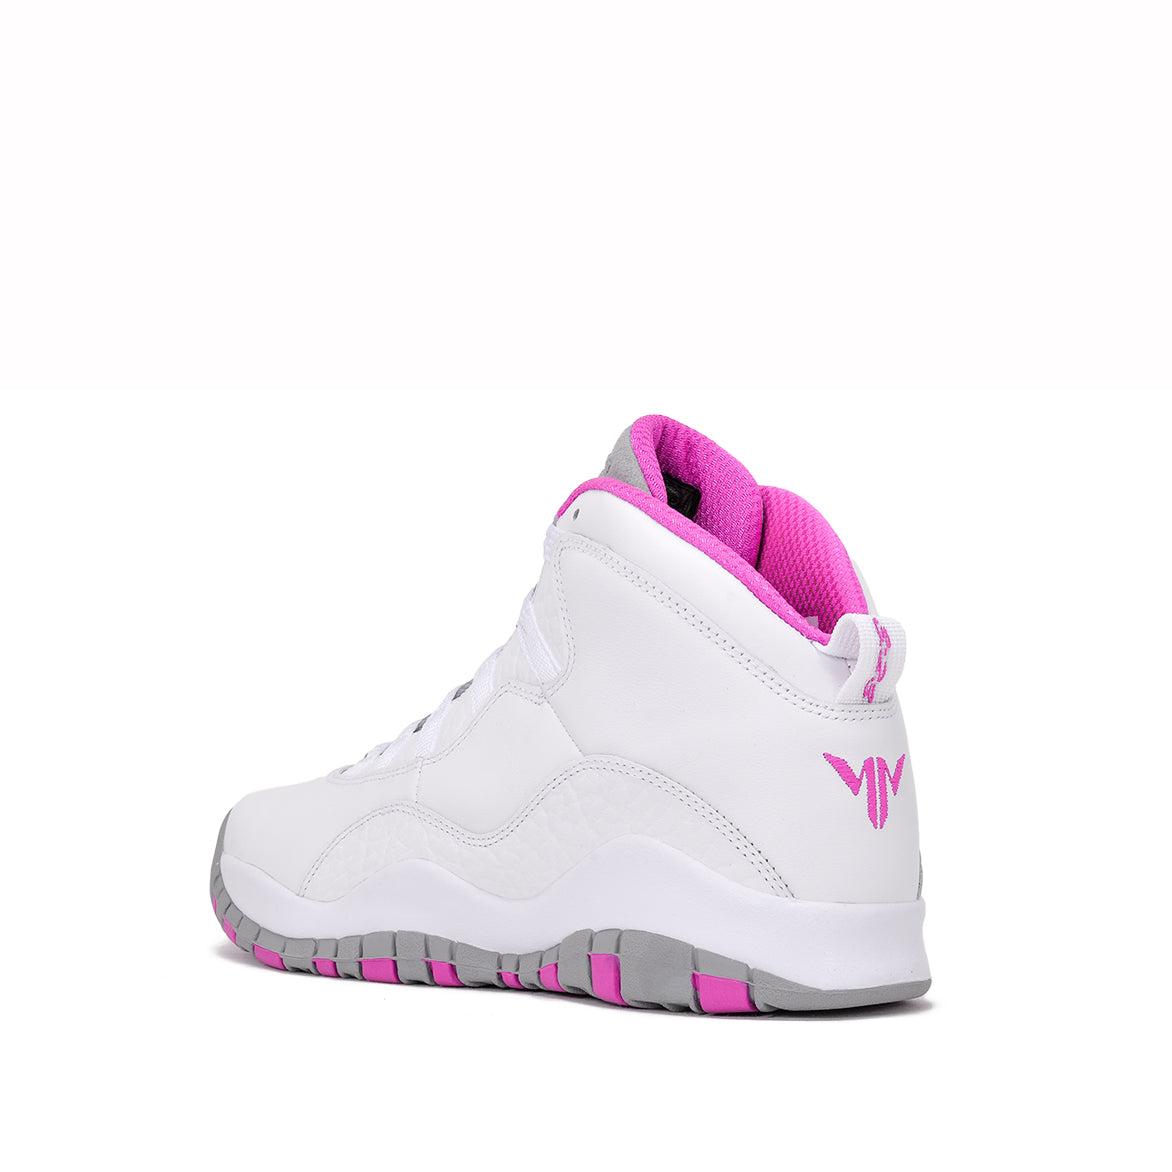 "AIR JORDAN 10 RETRO (GG) ""MAYA MOORE"""